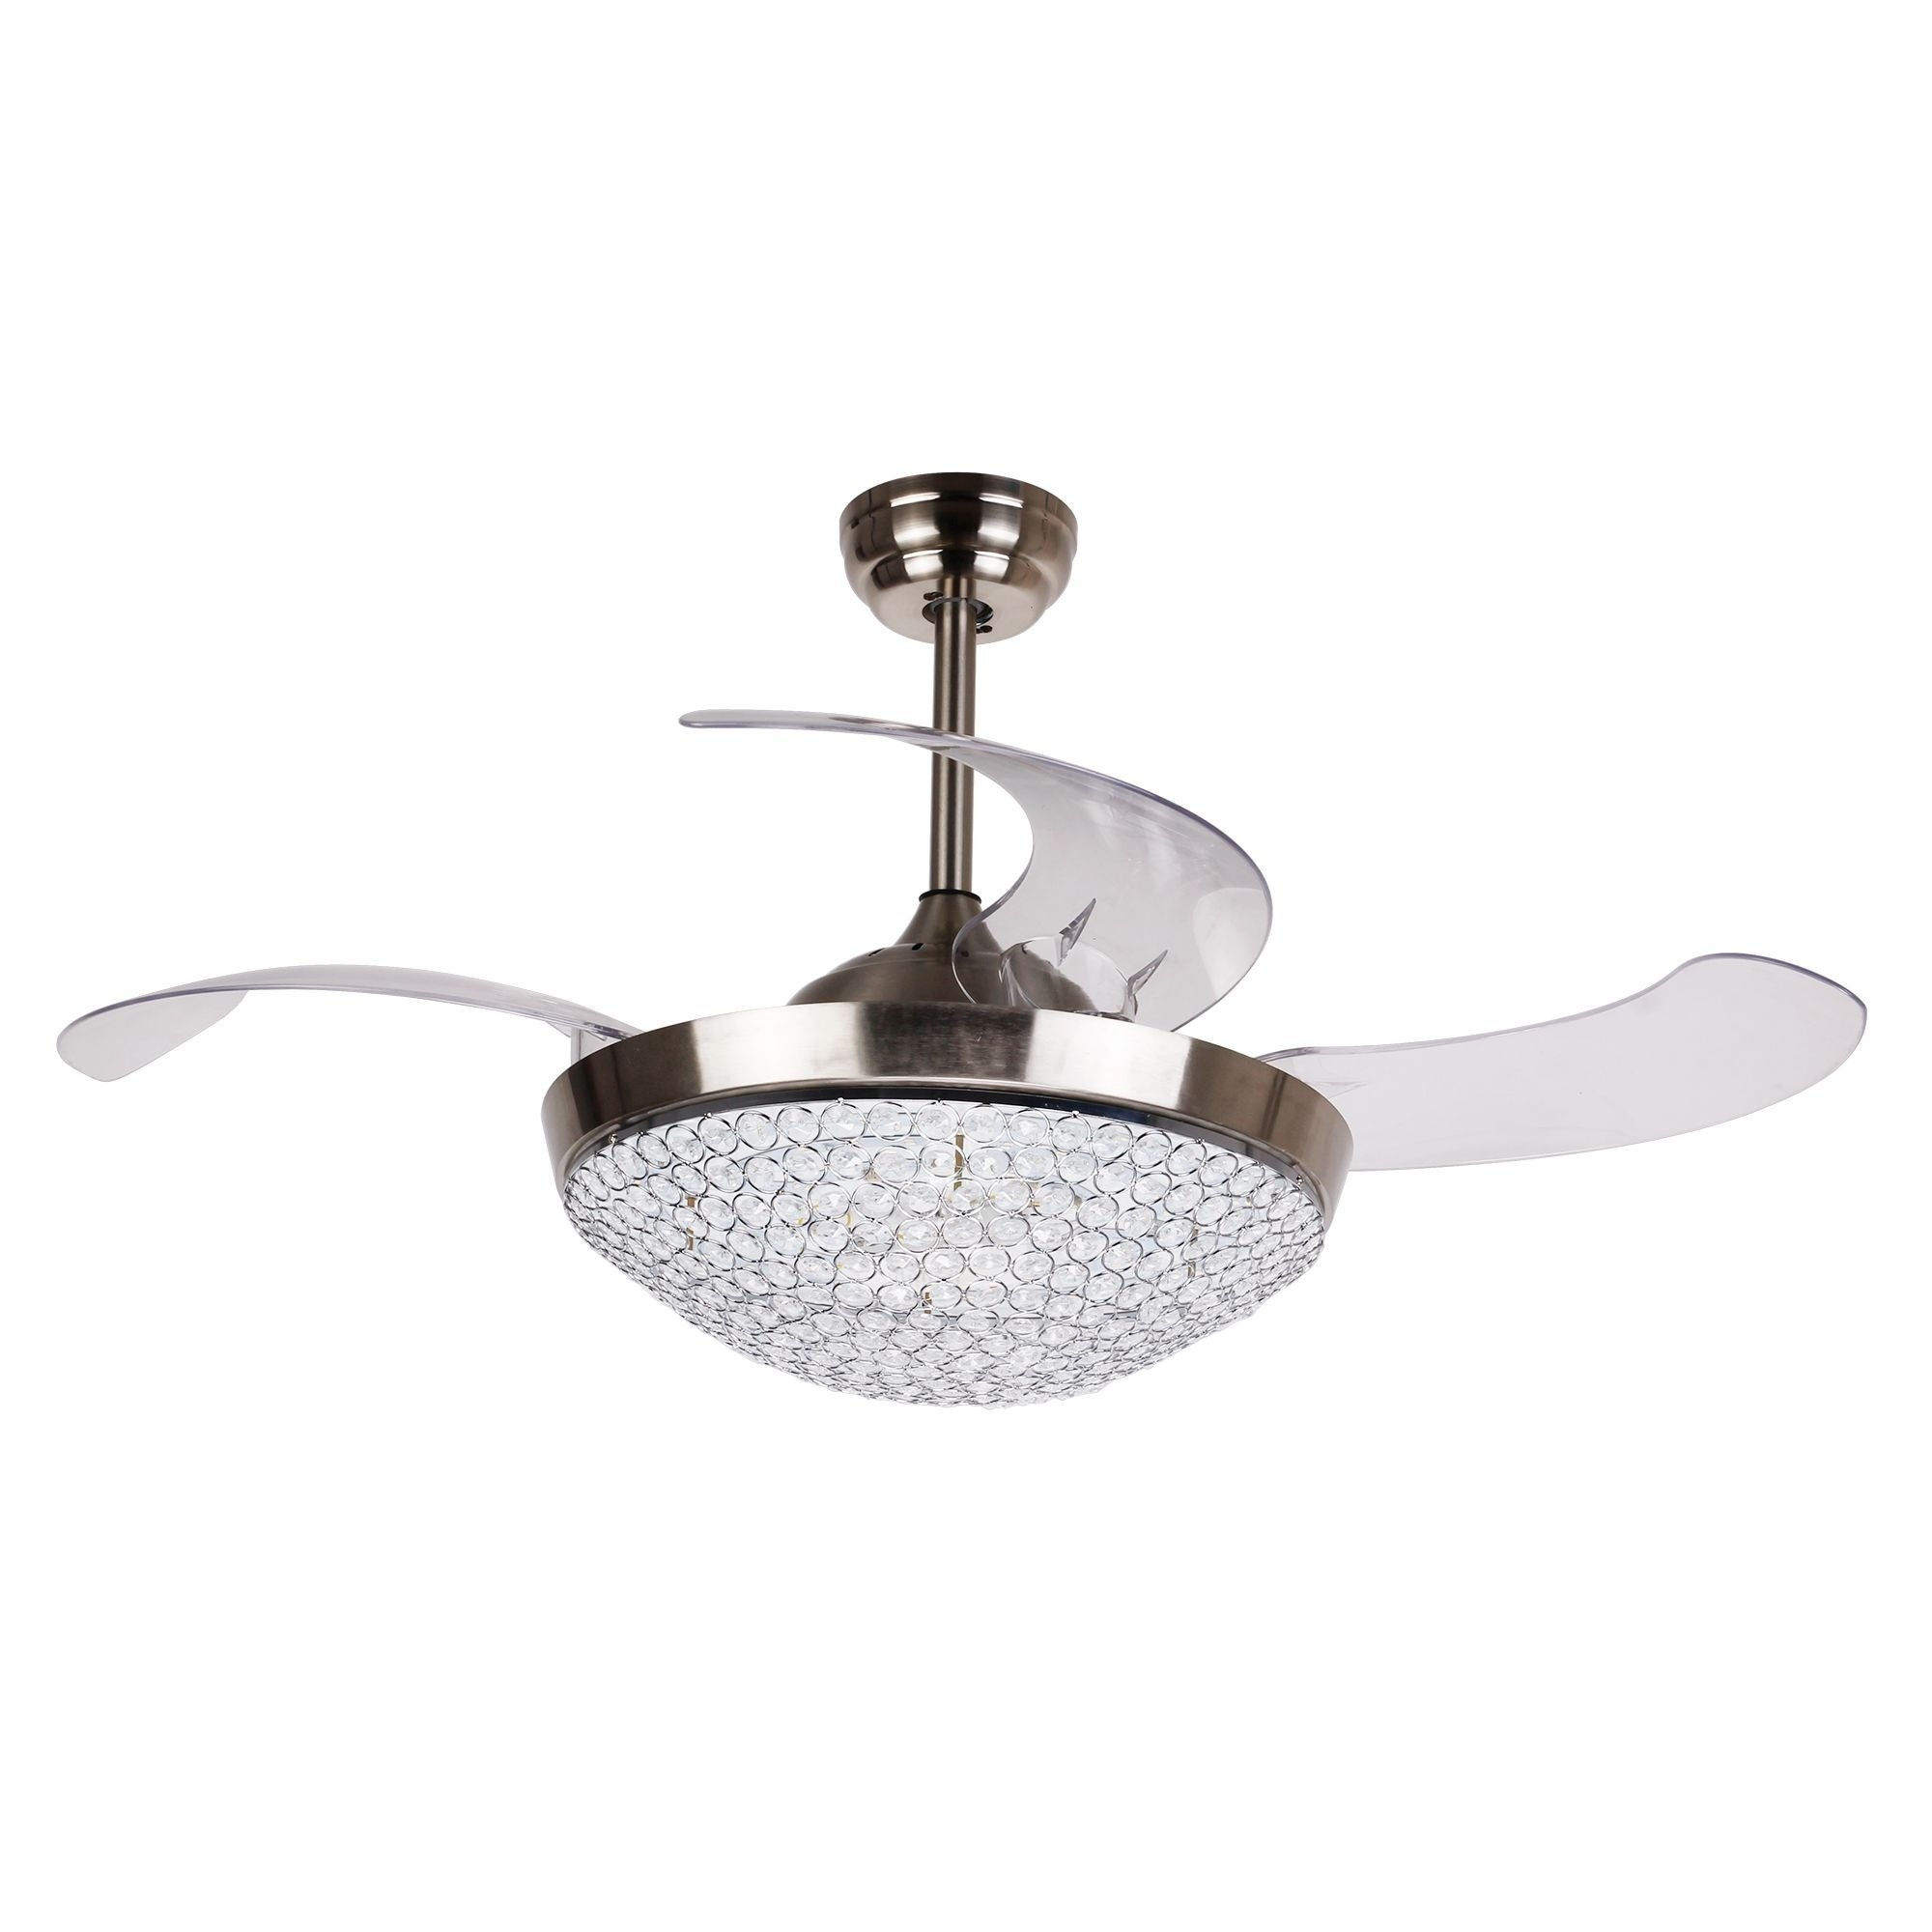 Dimmable Led 42 Inch Foldable 4 Blades Crystal Ceiling Fan With Remote